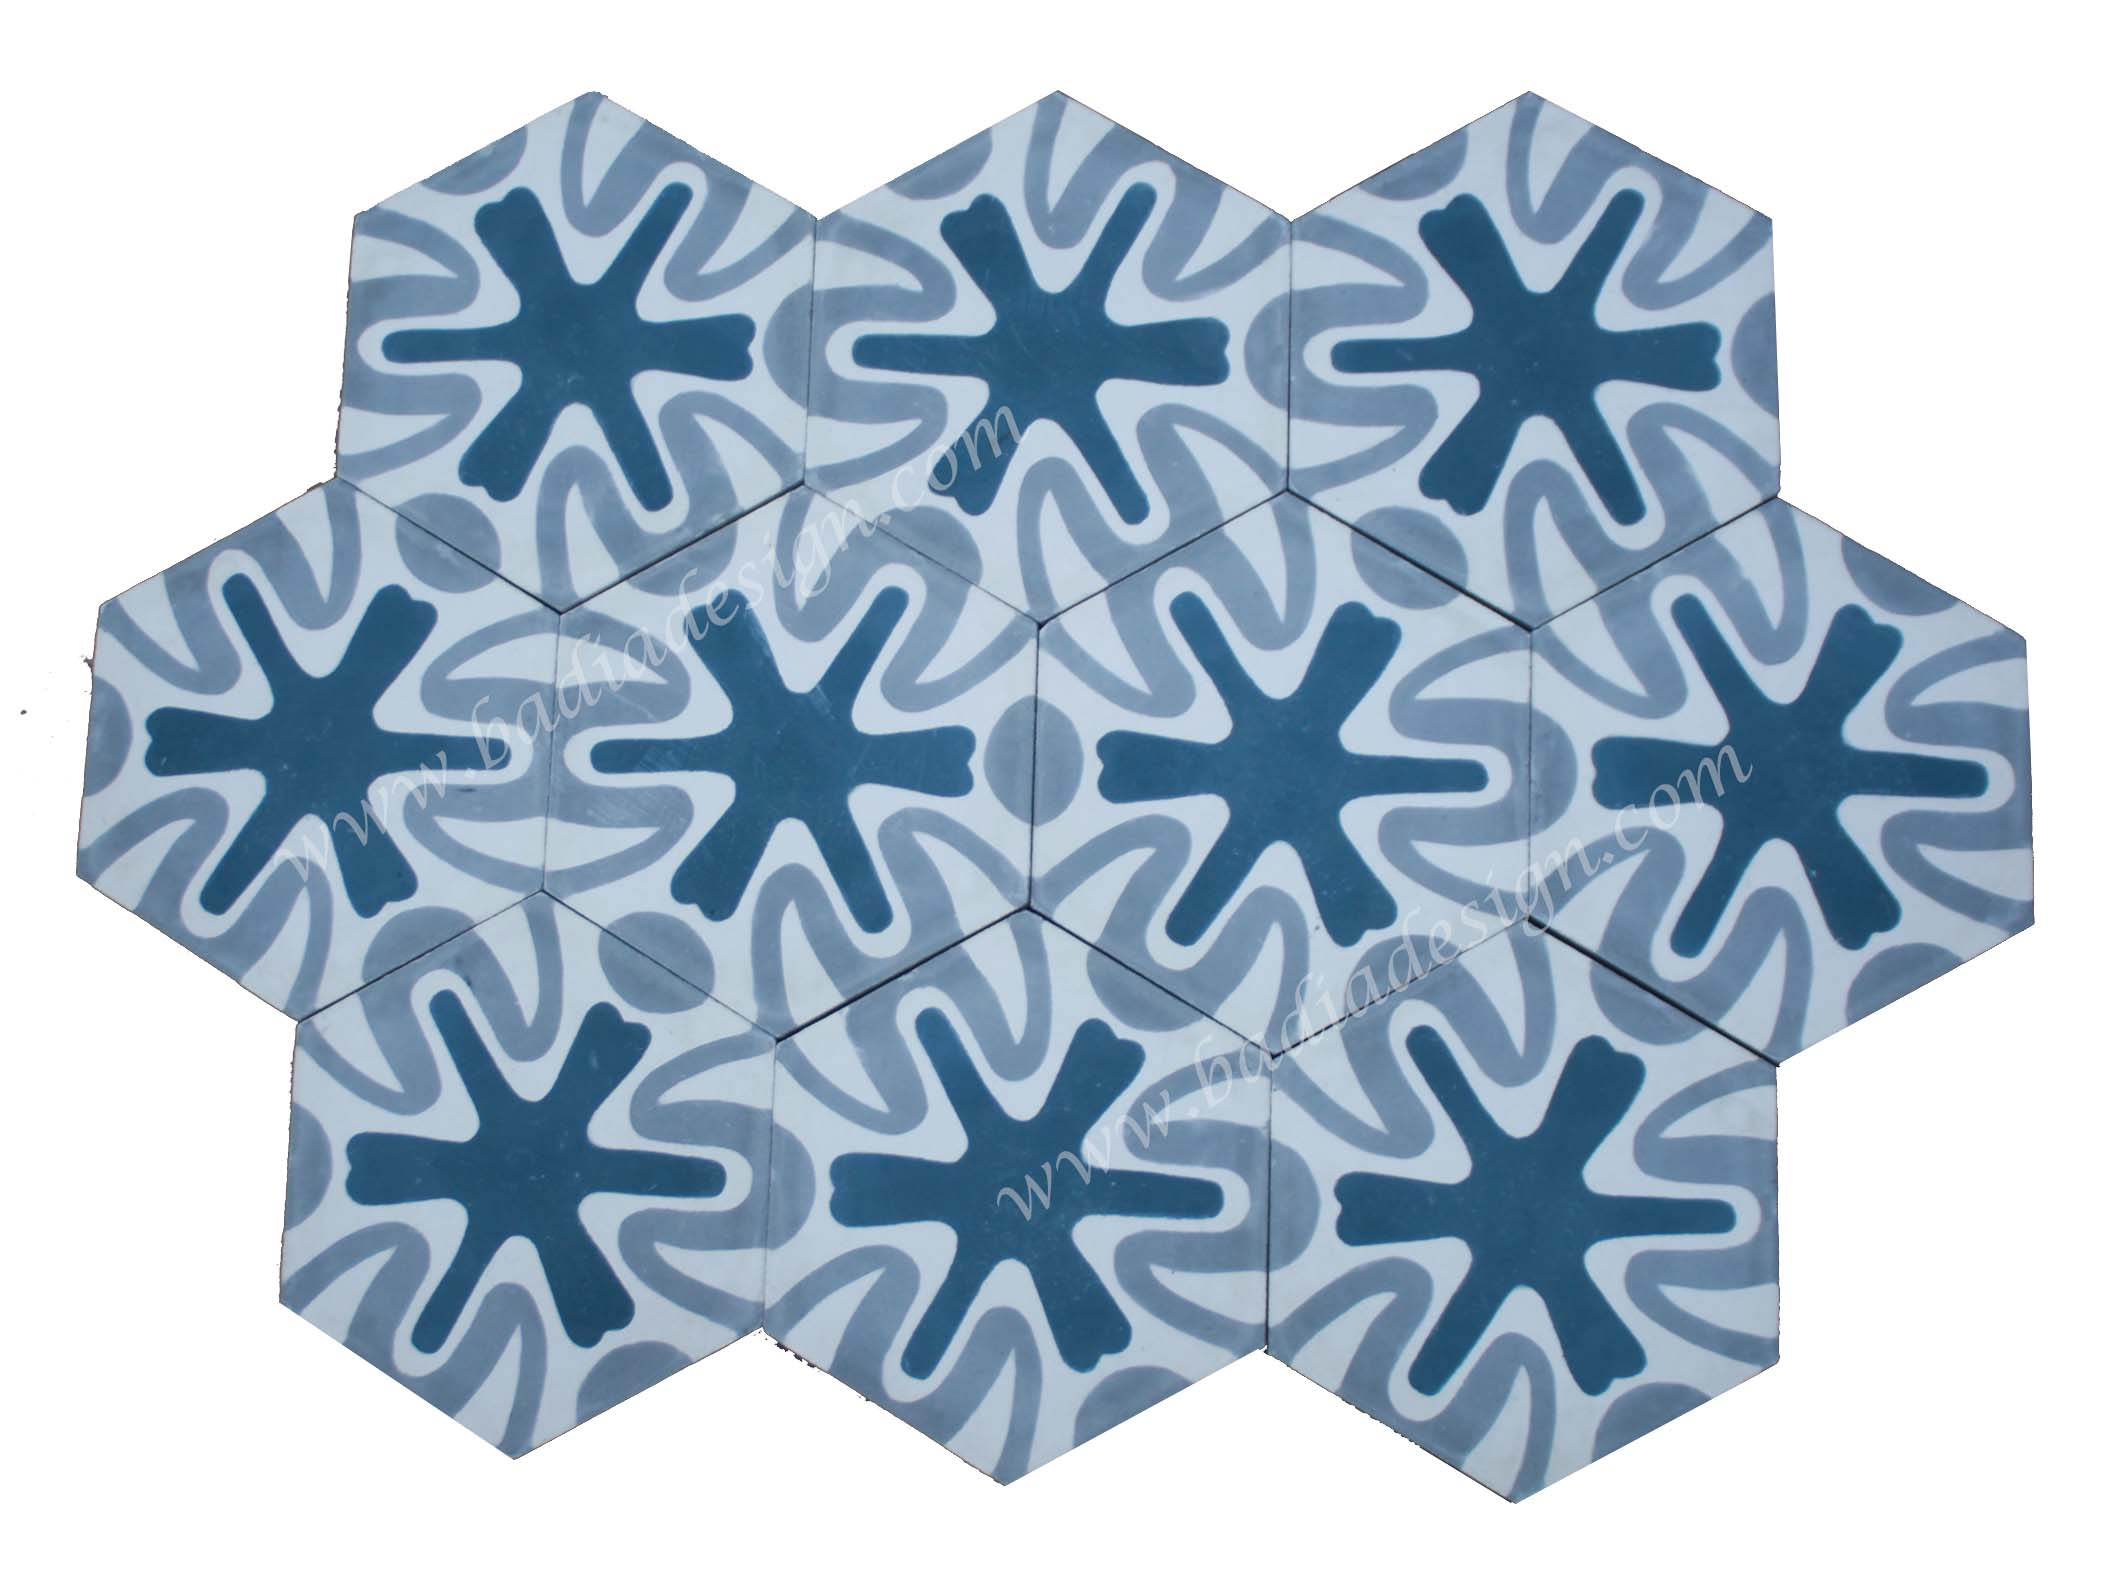 moroccan-hexagon-shaped-cement-tile-ct099-1.jpg